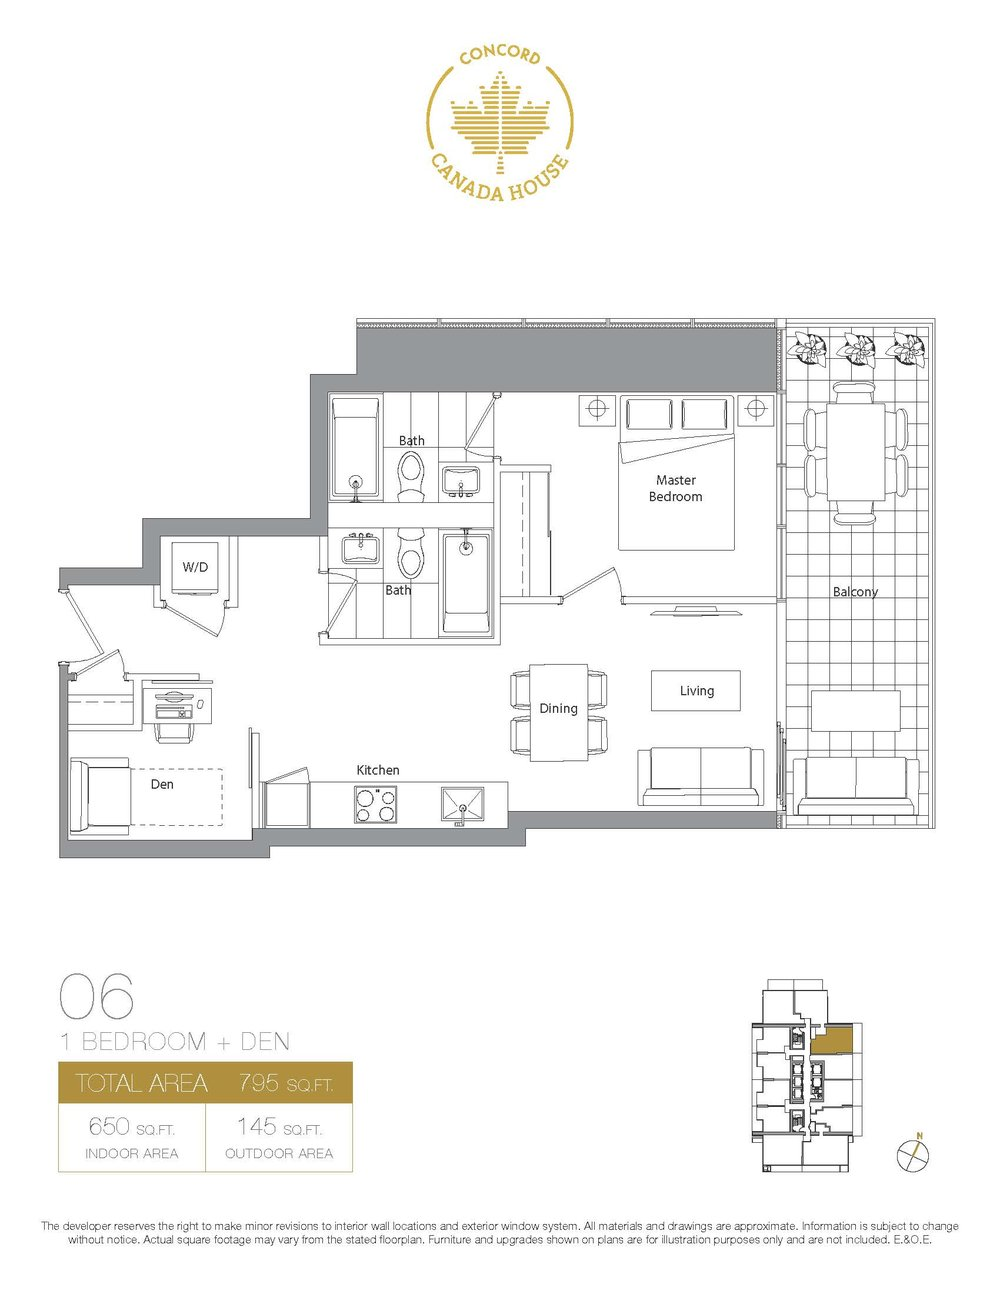 Blk22_B_Lower_Floorplans_LR_062817 5.jpg